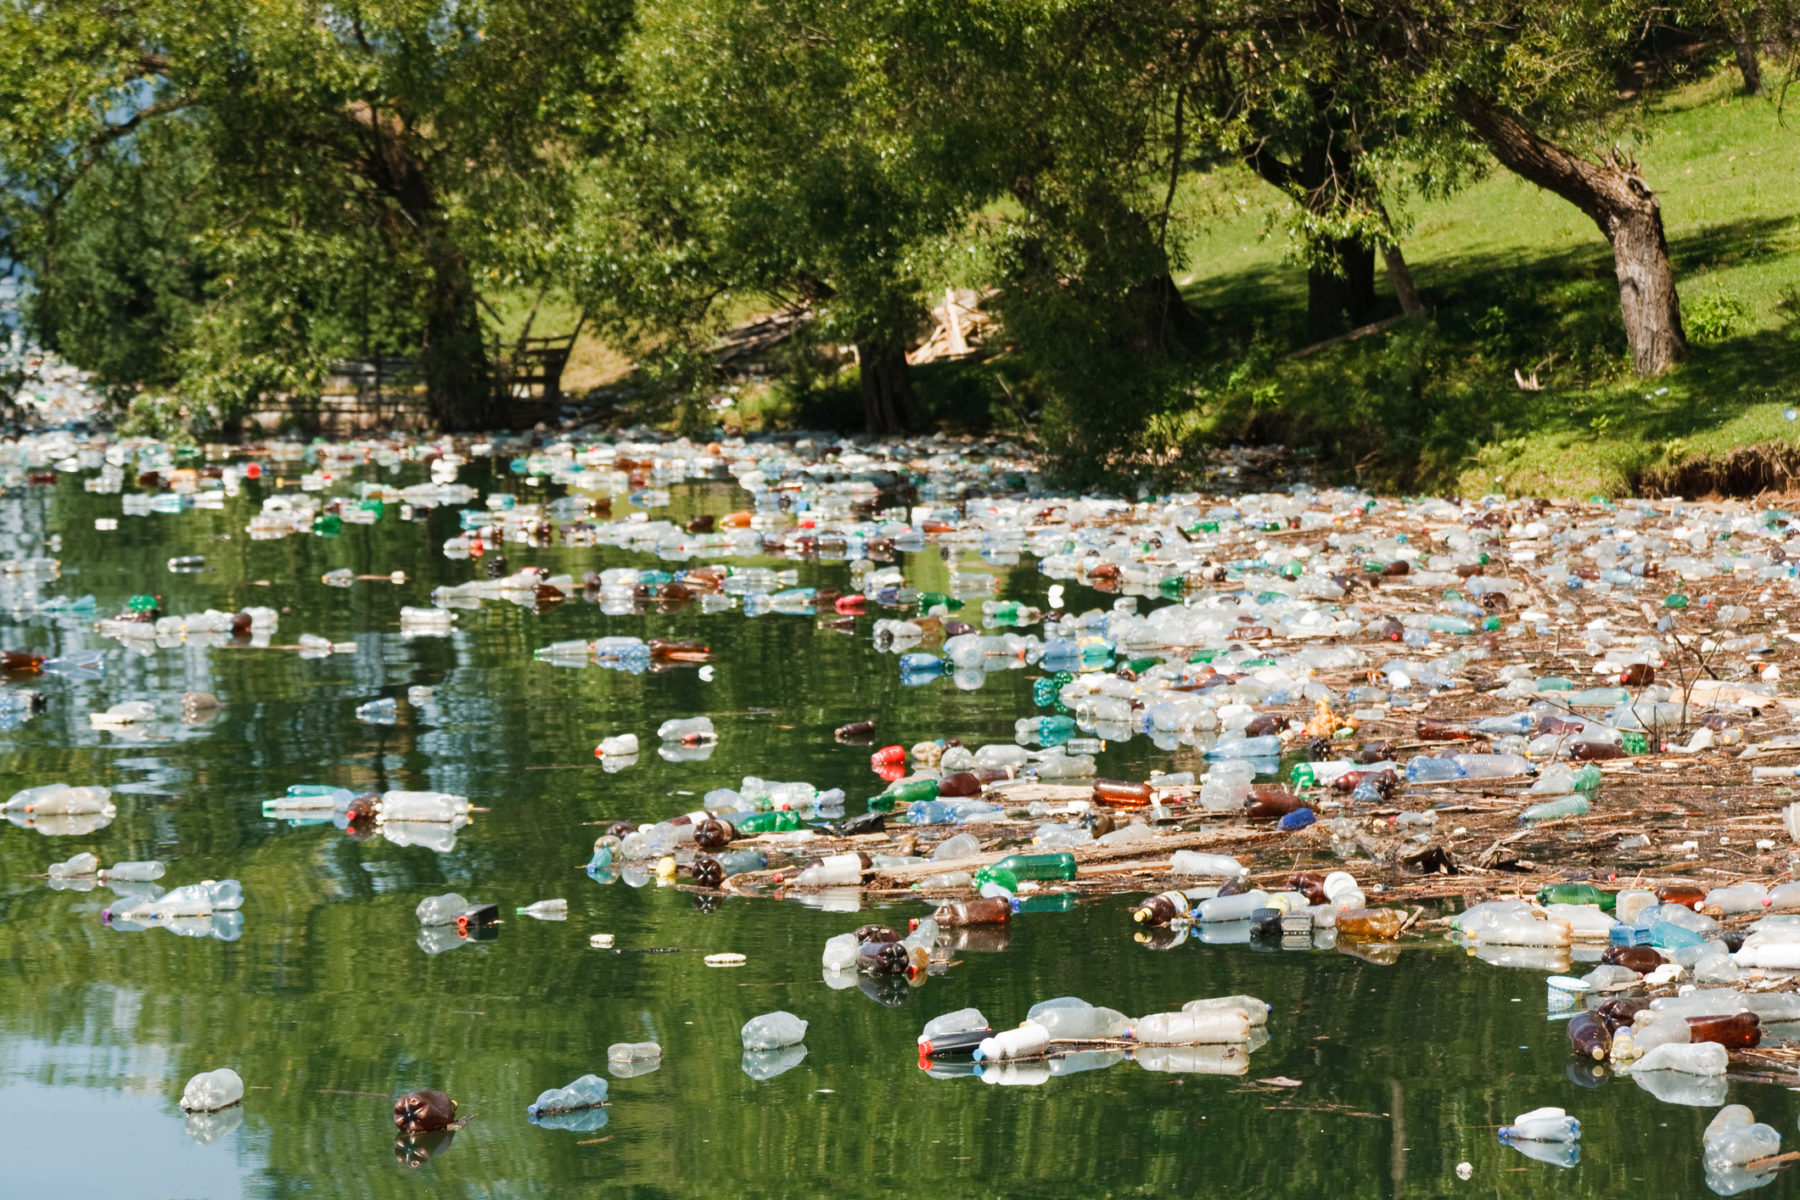 The Perilous Facts Of Living In A Plastic World